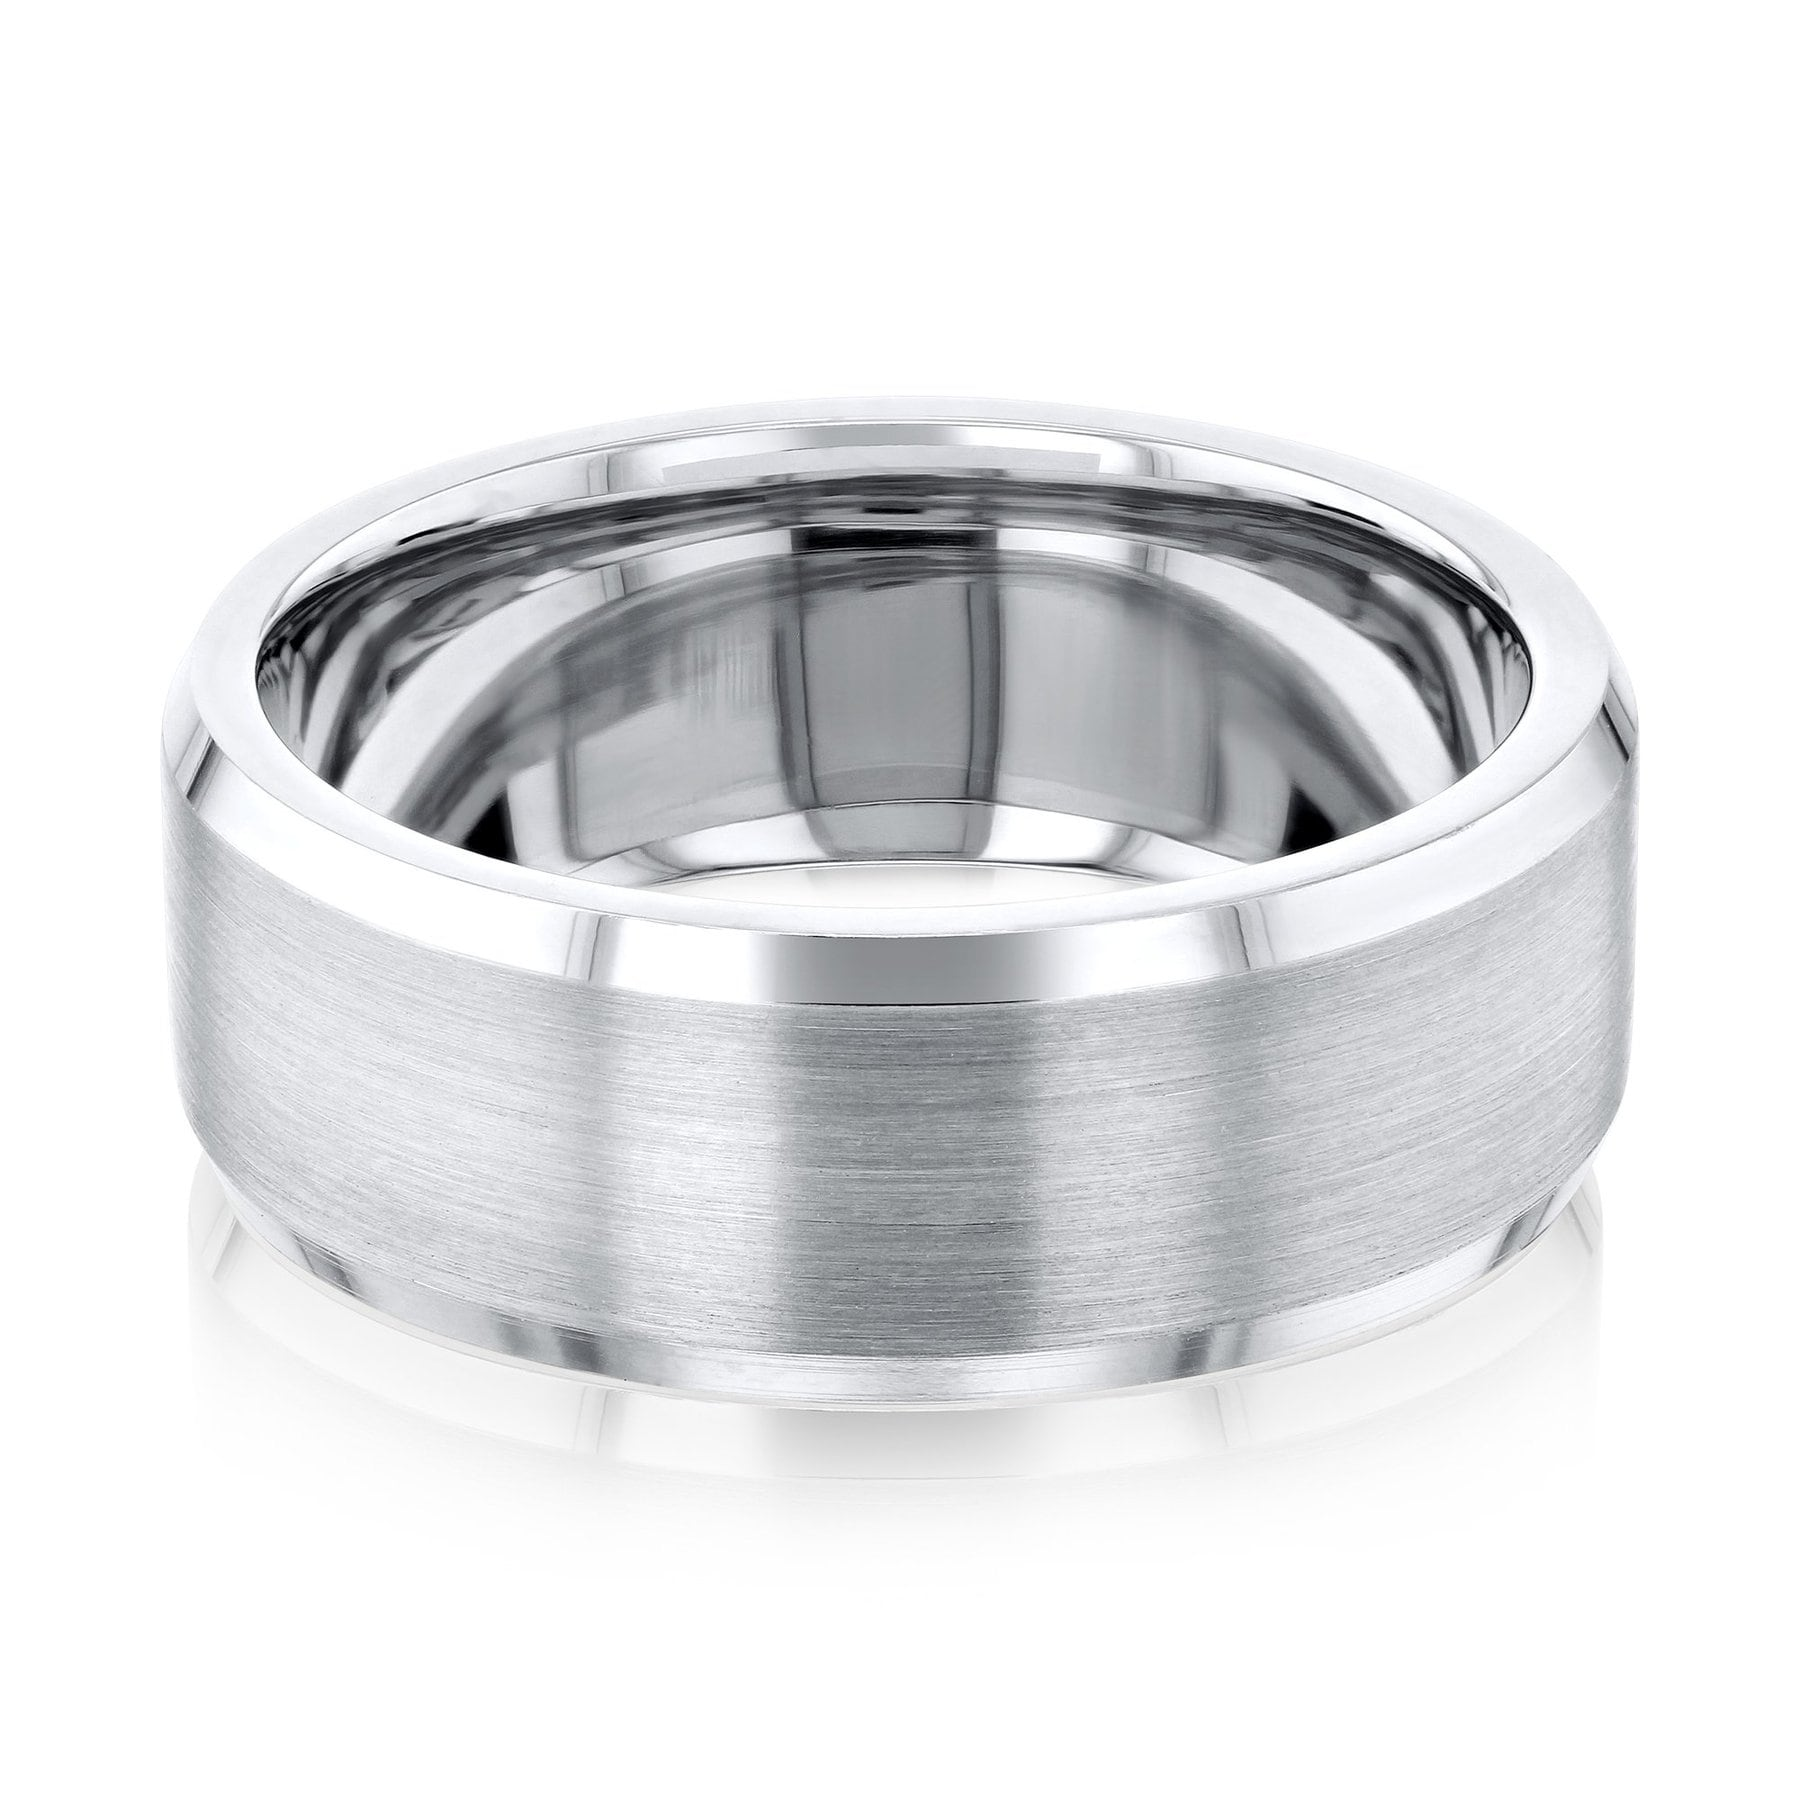 925 Sterling Silver 6mm Bevel Edge Size 13 Wedding Ring Band Classic Beveled Comfort Fit Fine Jewelry For Women Gift Set